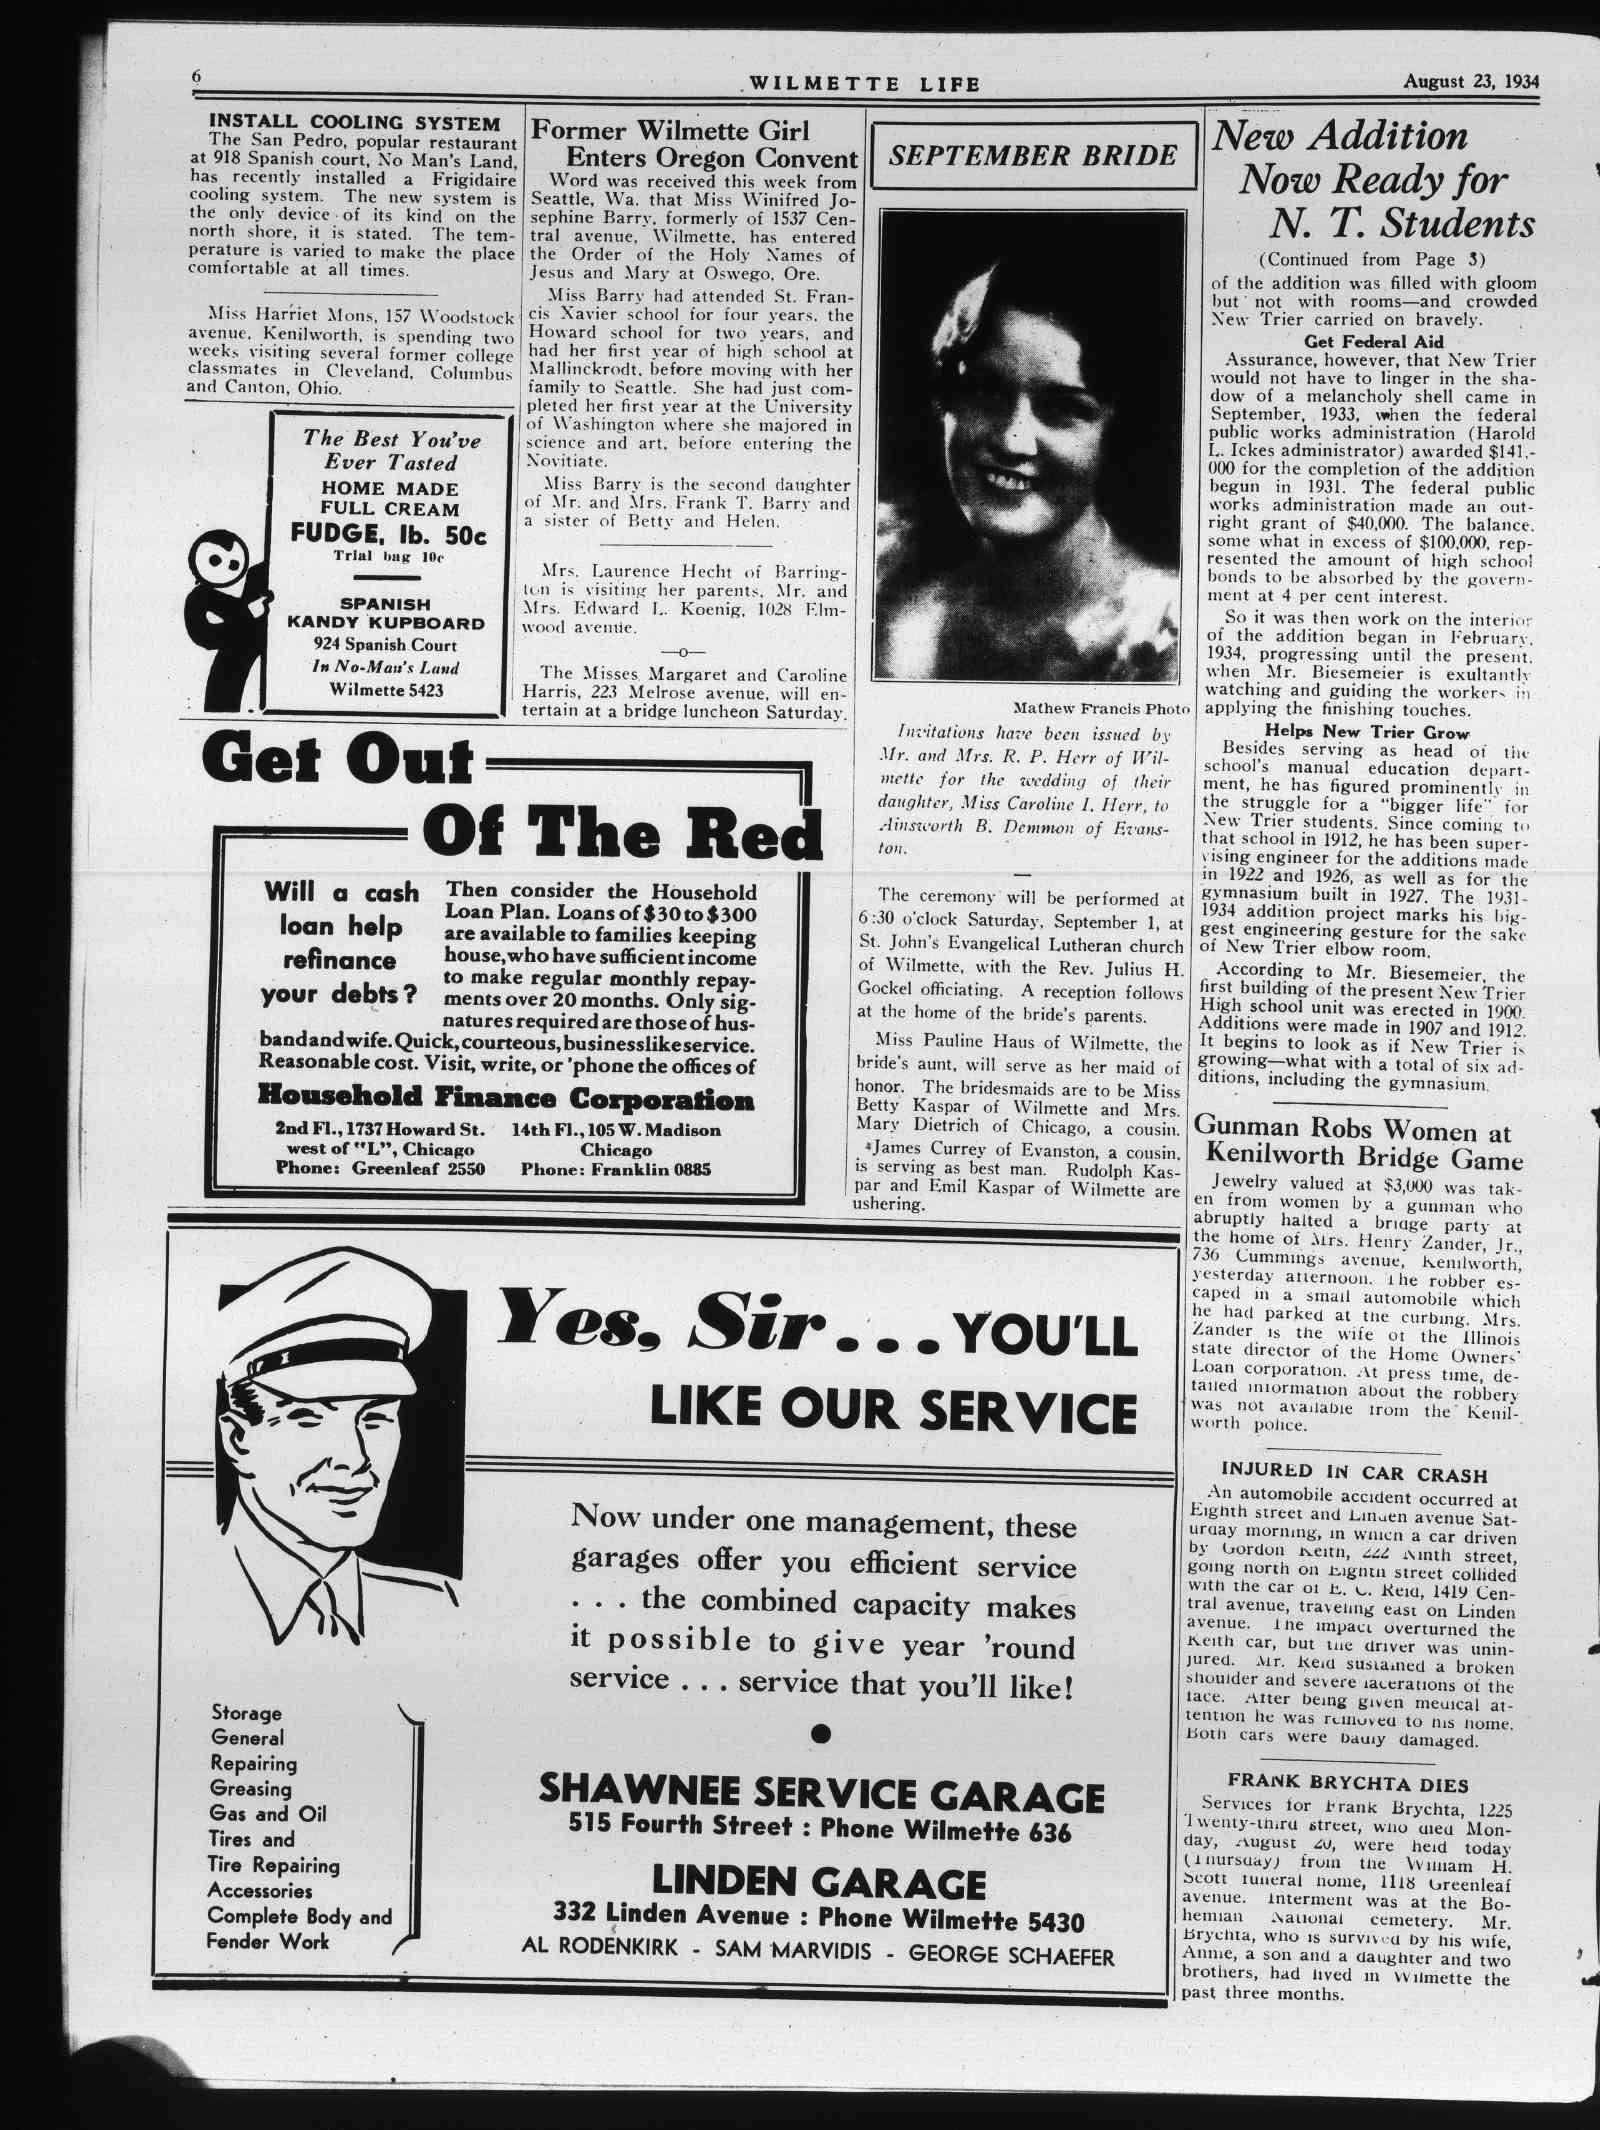 Wilmette Life (Wilmette, Illinois), 23 Aug 1934